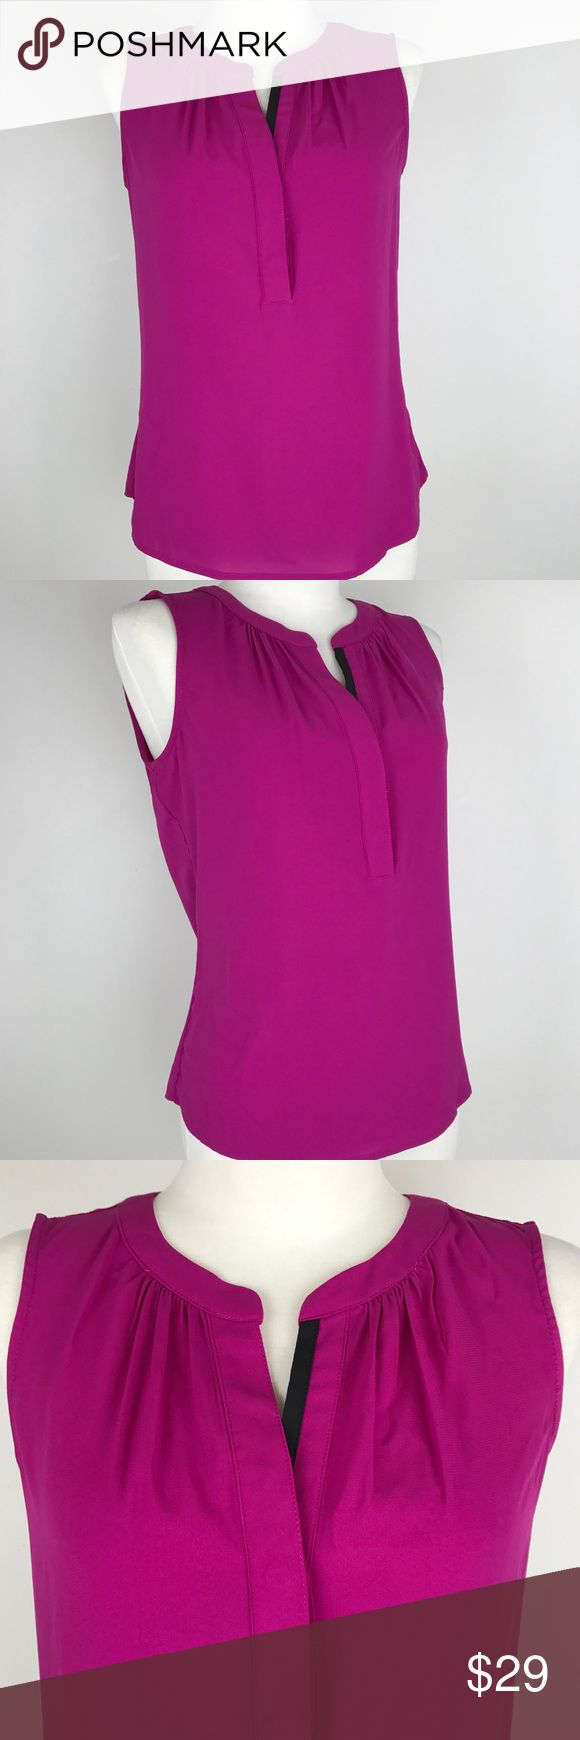 Calvin Klein Suits & Separates Sleeveless Blouse Calvin Klein Suits & Separates Sleeveless Blouse features split neck with contrast trim. Perfect to wear separately or under a suit jacket. Calvin Klein Tops Button Down Shirts